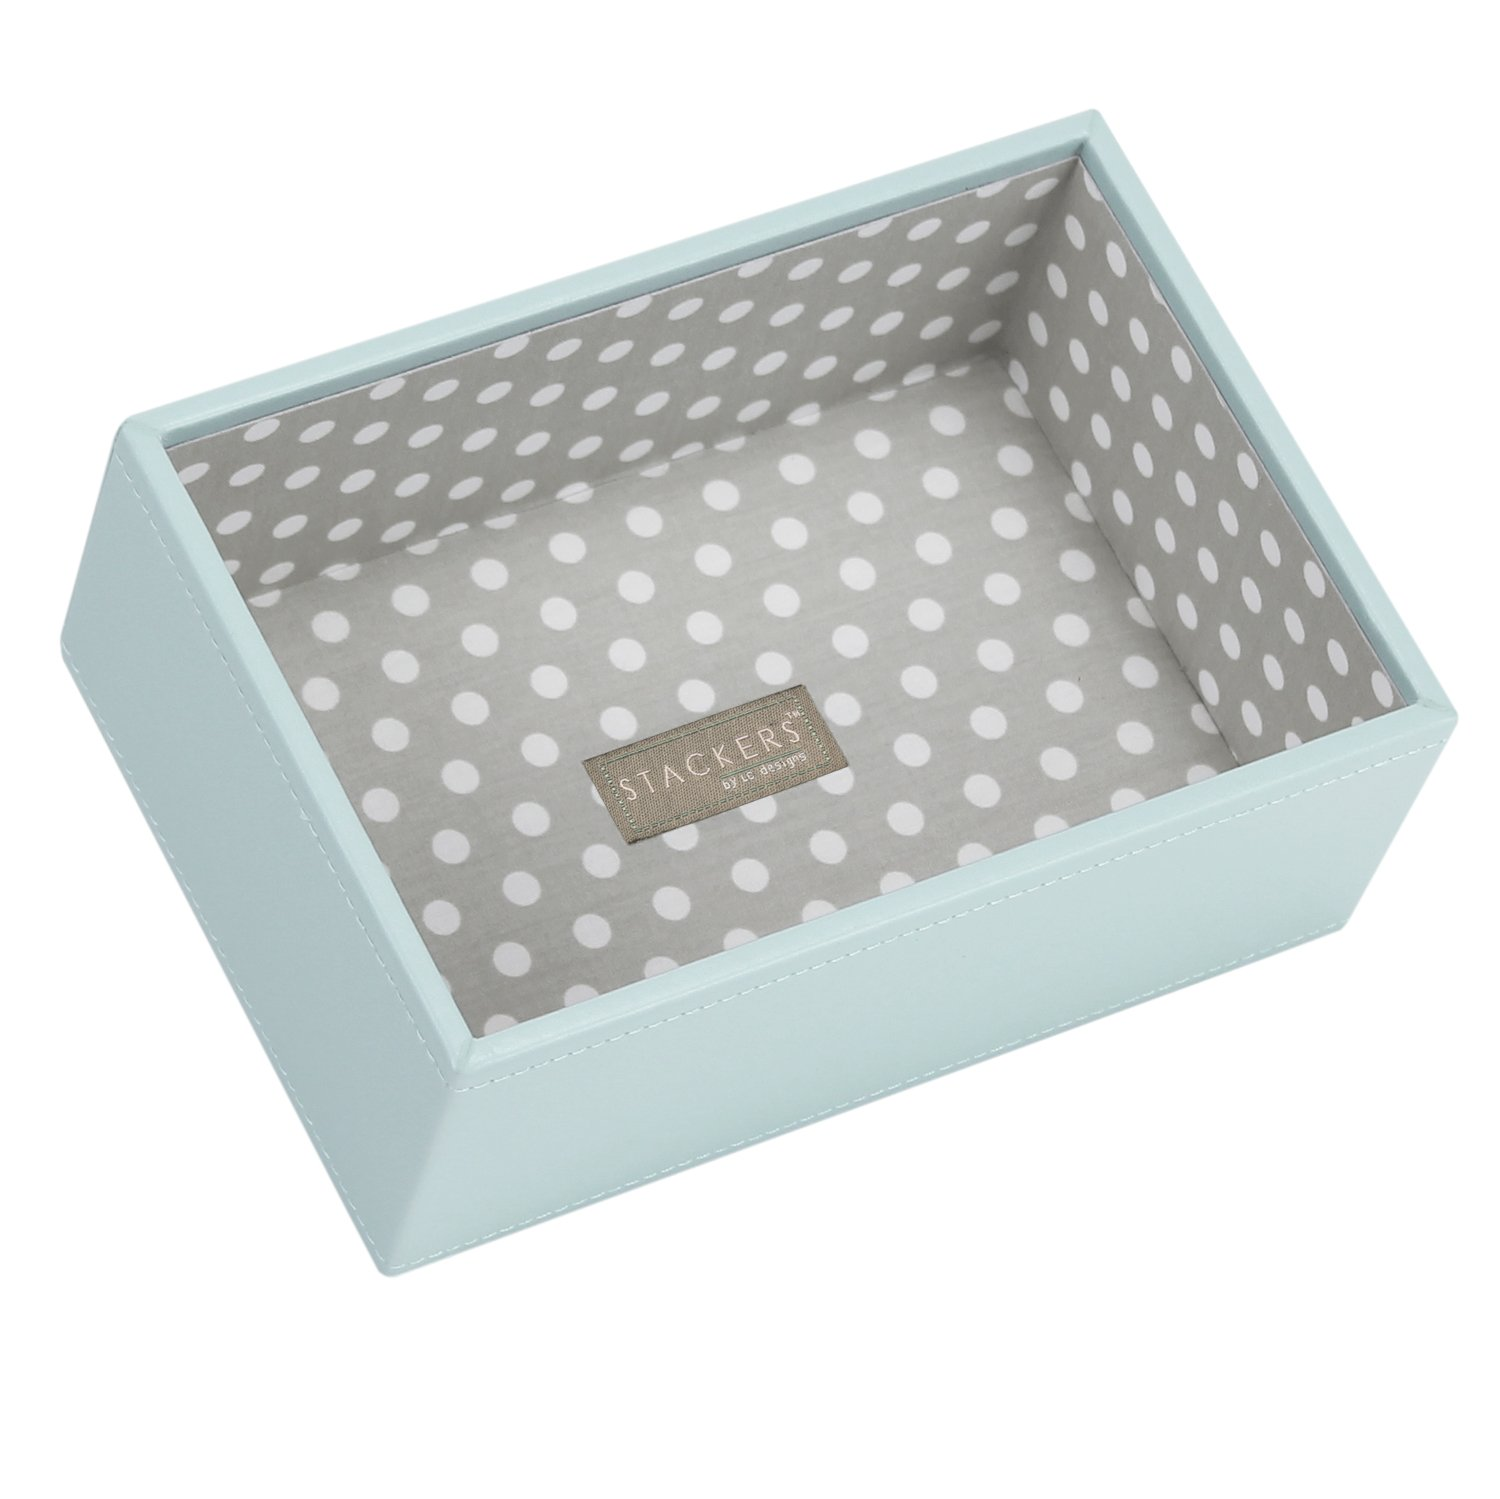 STACKERS 'MINI SIZE' - New for 2013 - Duck Egg Blue Deep Open STACKER Jewelry Box with Grey Polka Dot Lining Carters of London 70819